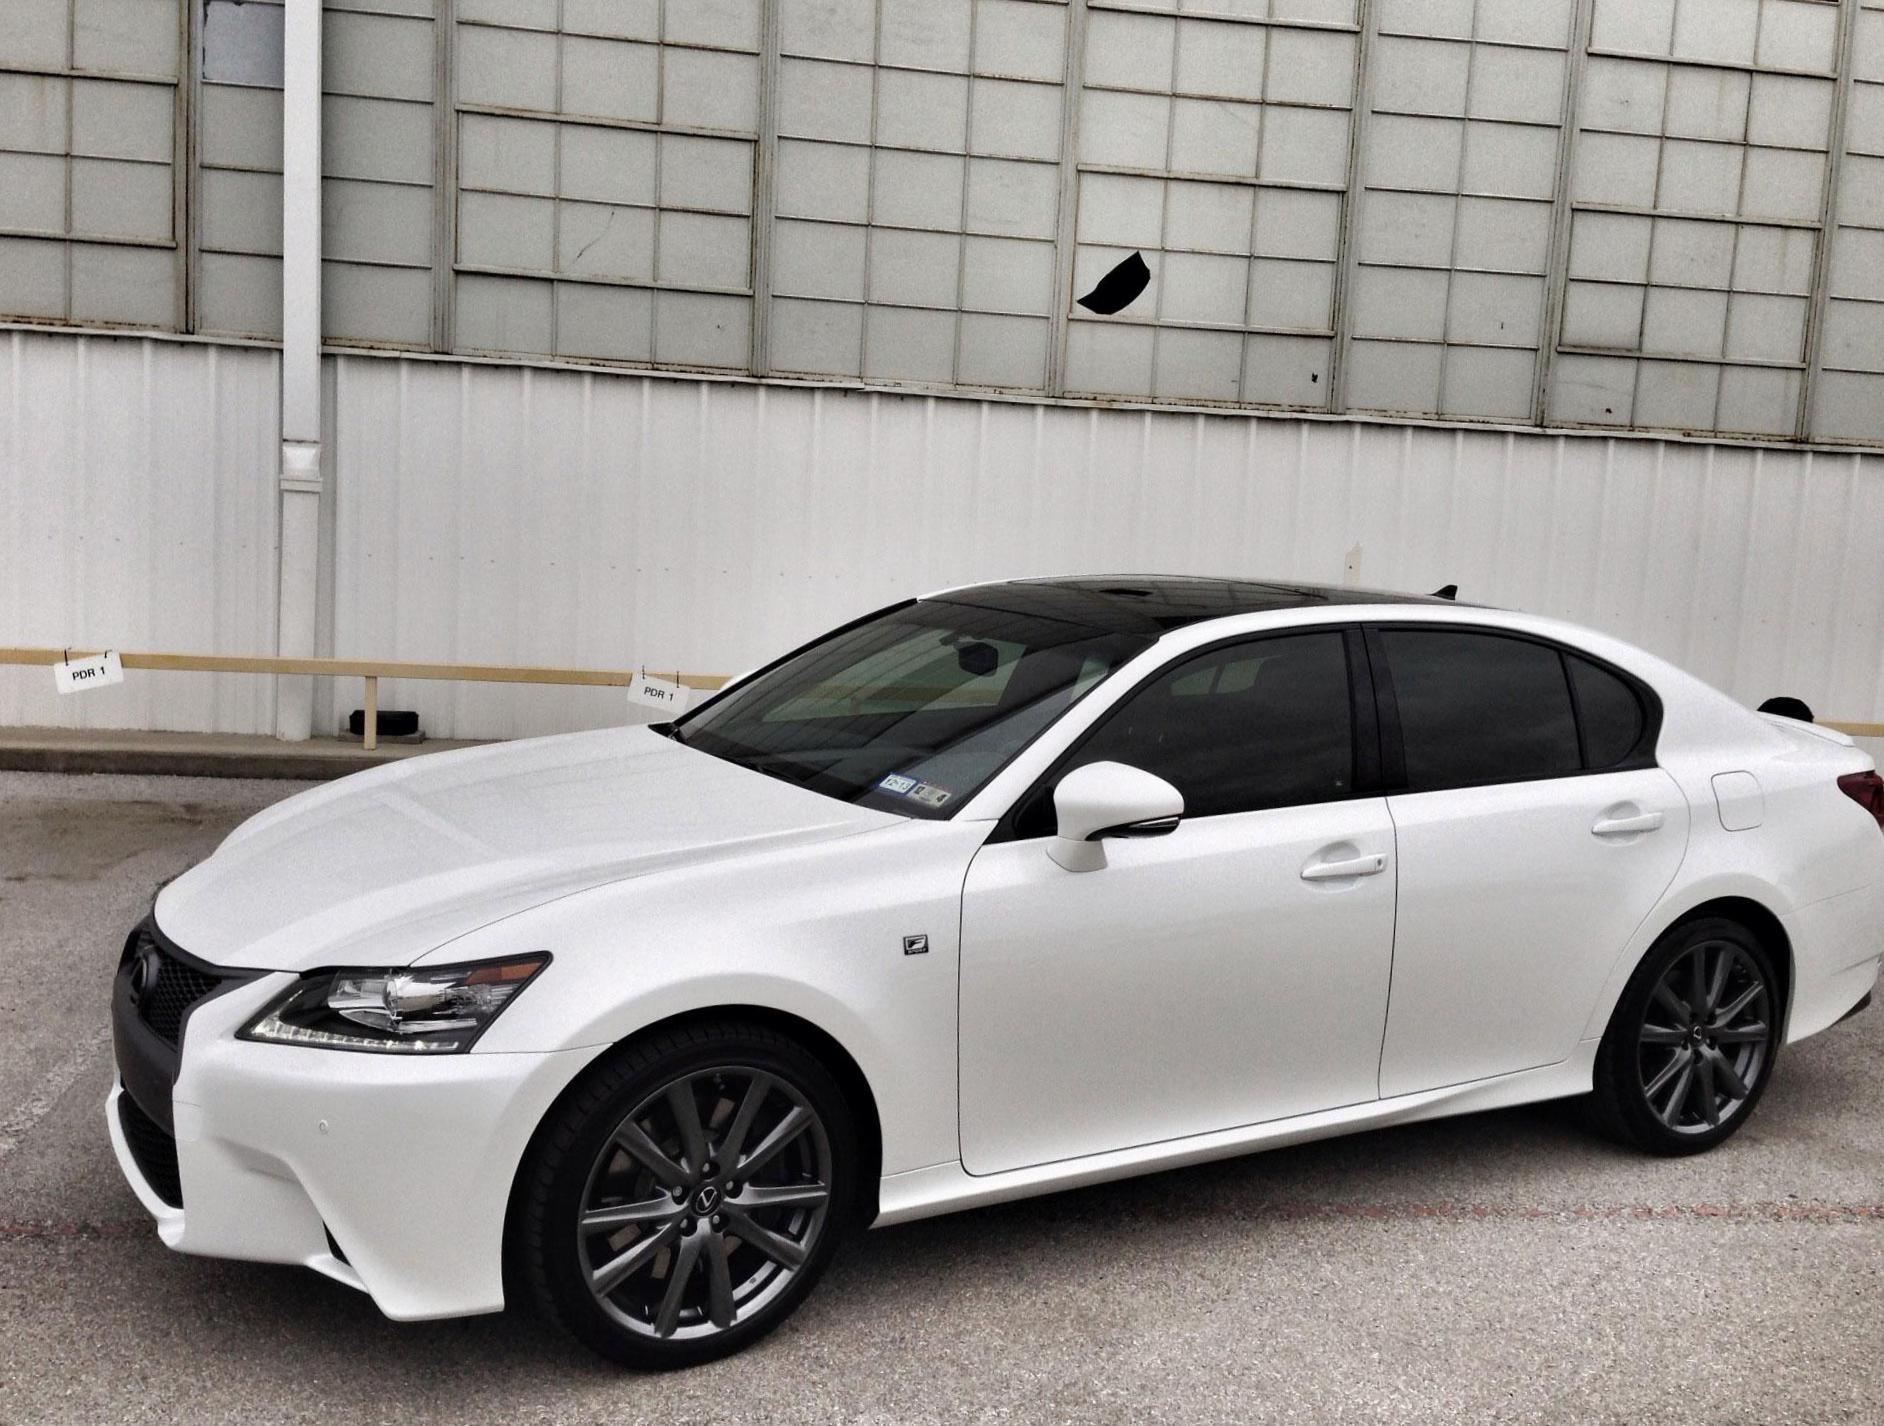 jan ens glam reserve bravec special sk in lease eng specials this saskatoon lexus